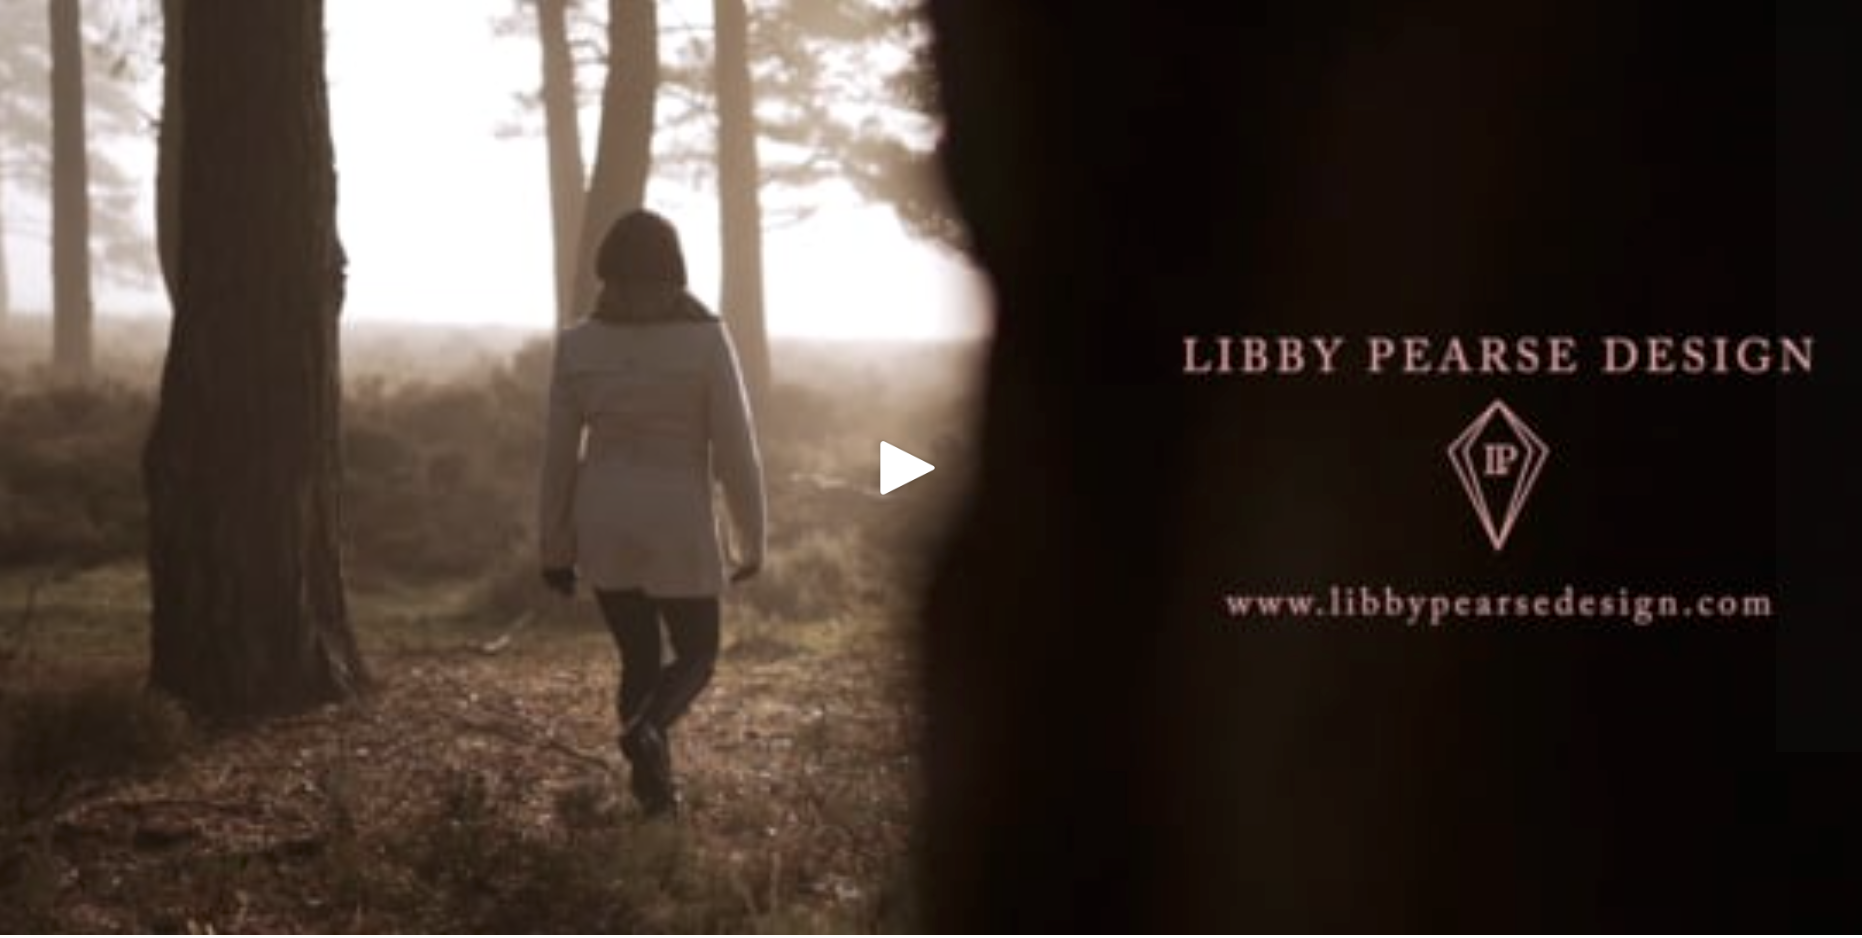 Libby Pearse Designs - we created a launch campaign for her Autumn / Winter collection of designs, with a variety of video content produced from a shoot in the New Forest.